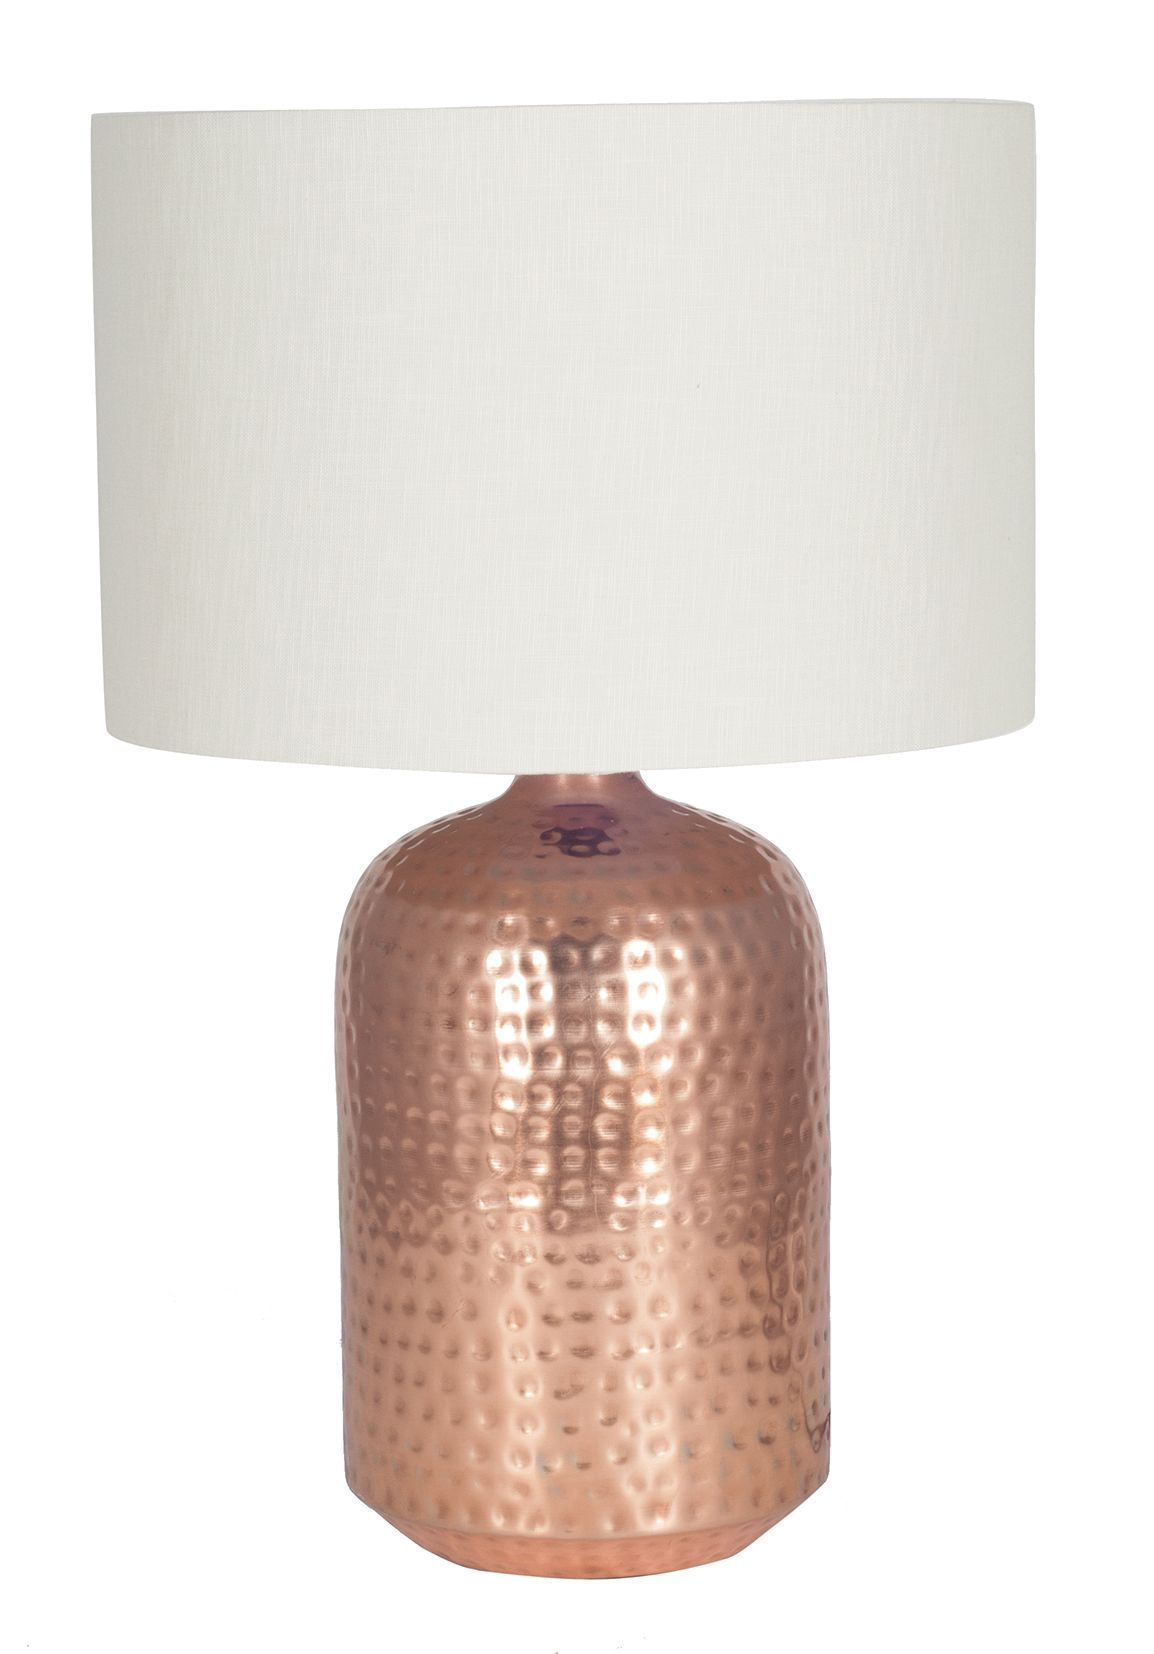 Pot Table Lamps Copper Hammered Capsule Pot Table Lamp Base